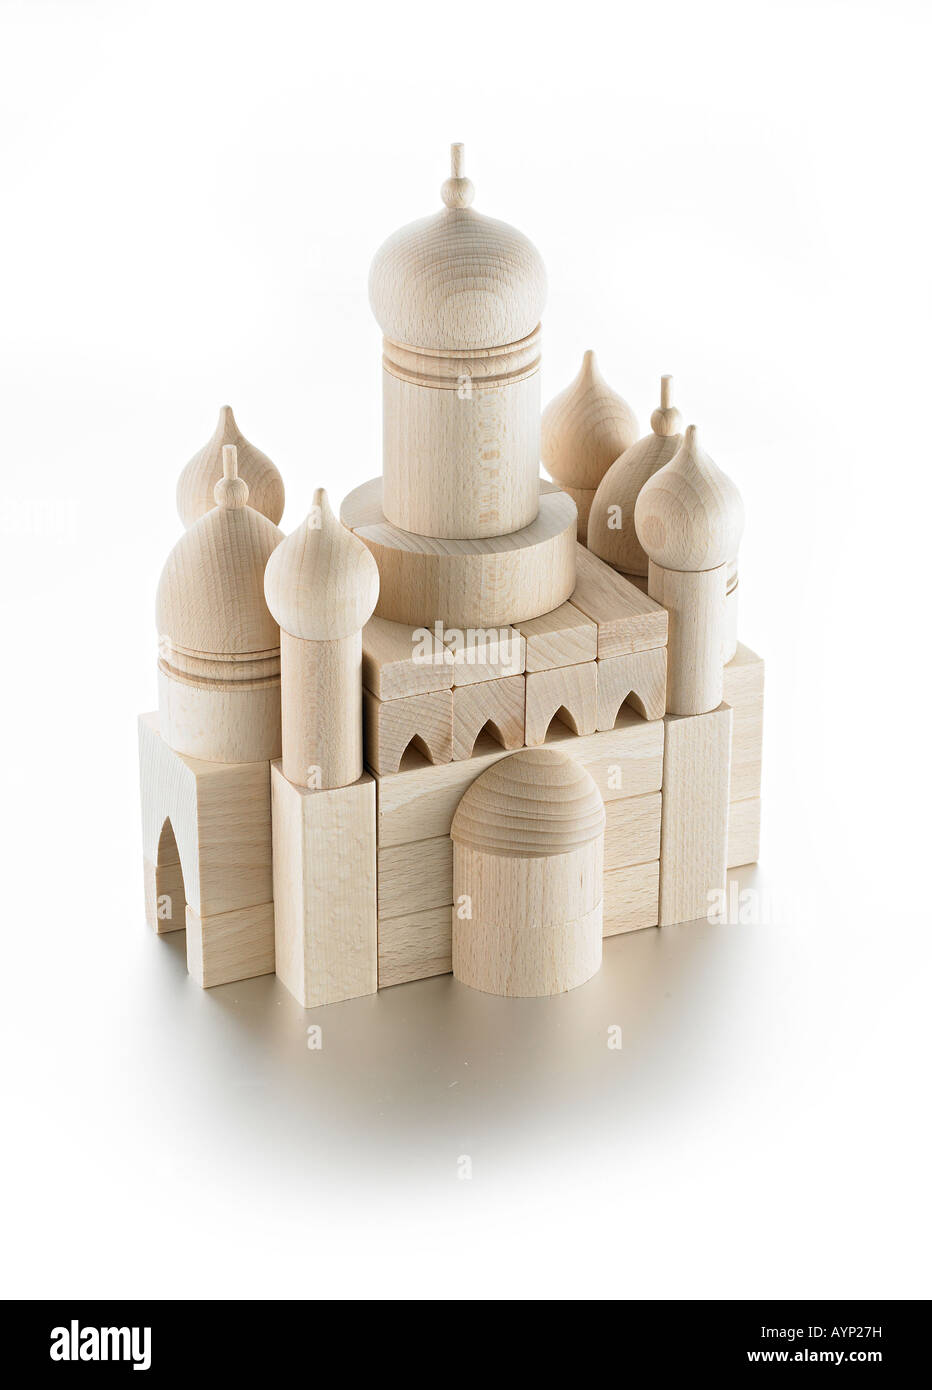 wooden toy mosque - Stock Image